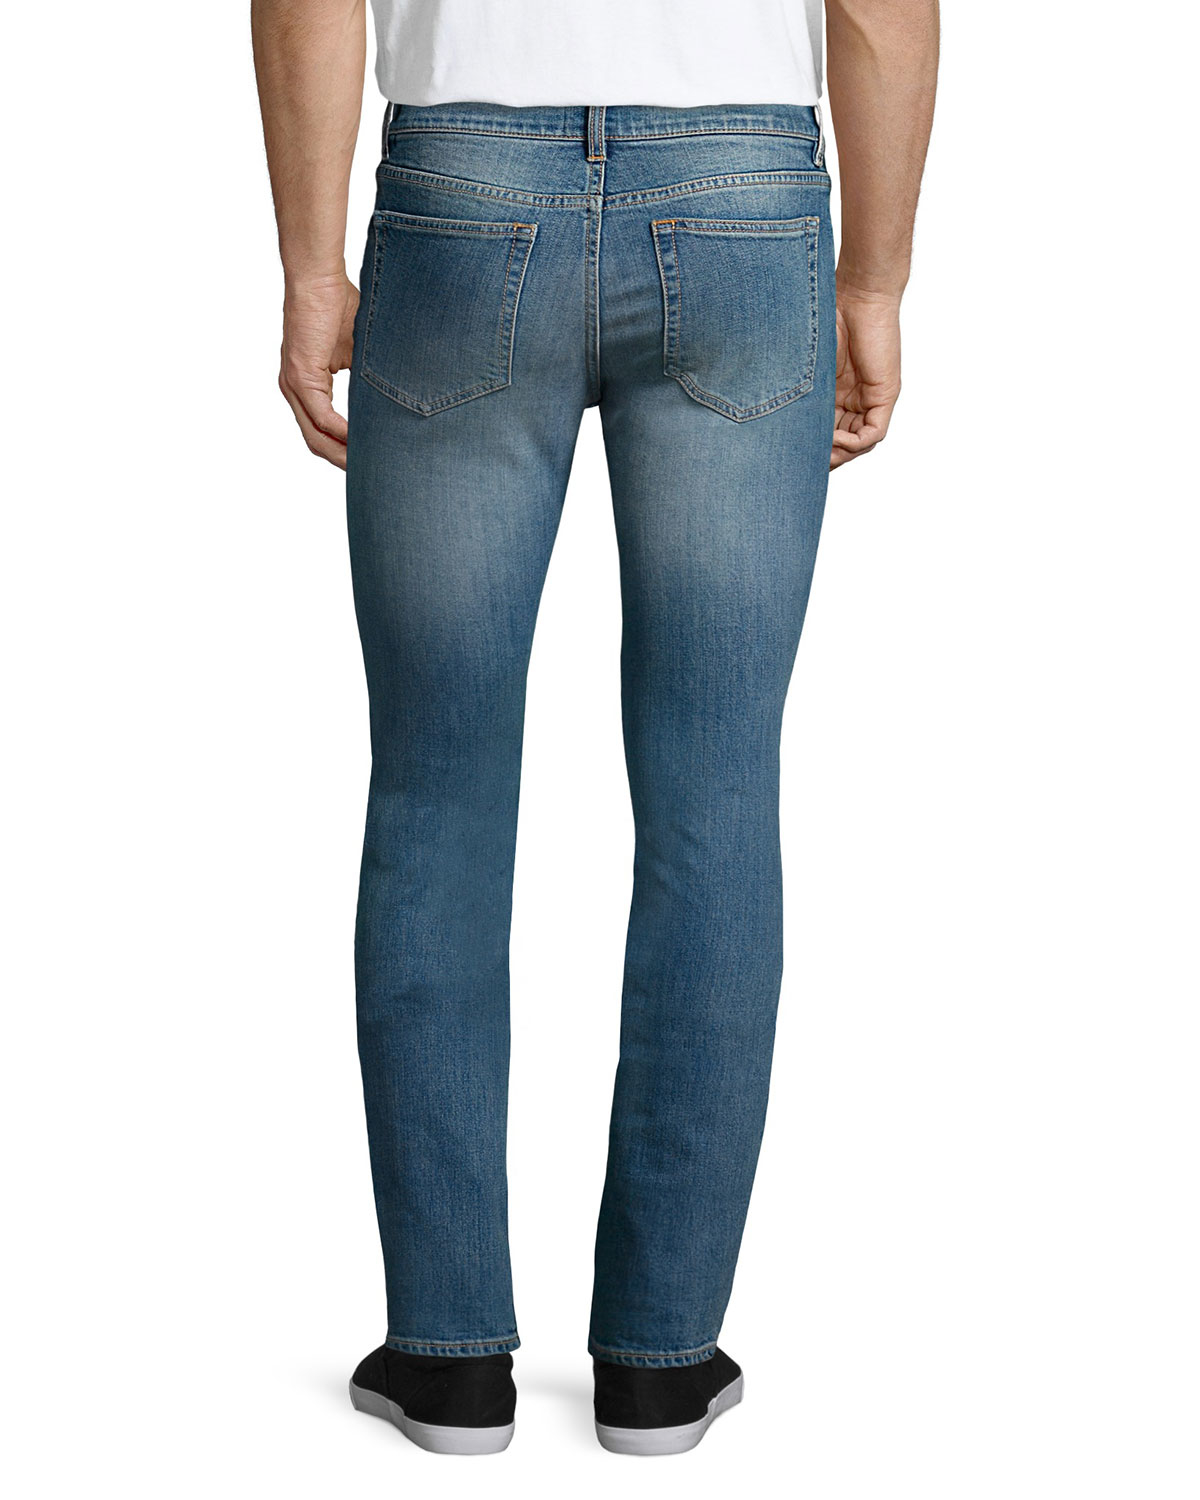 acne studios ace carter skinny denim jeans in blue for men lyst. Black Bedroom Furniture Sets. Home Design Ideas